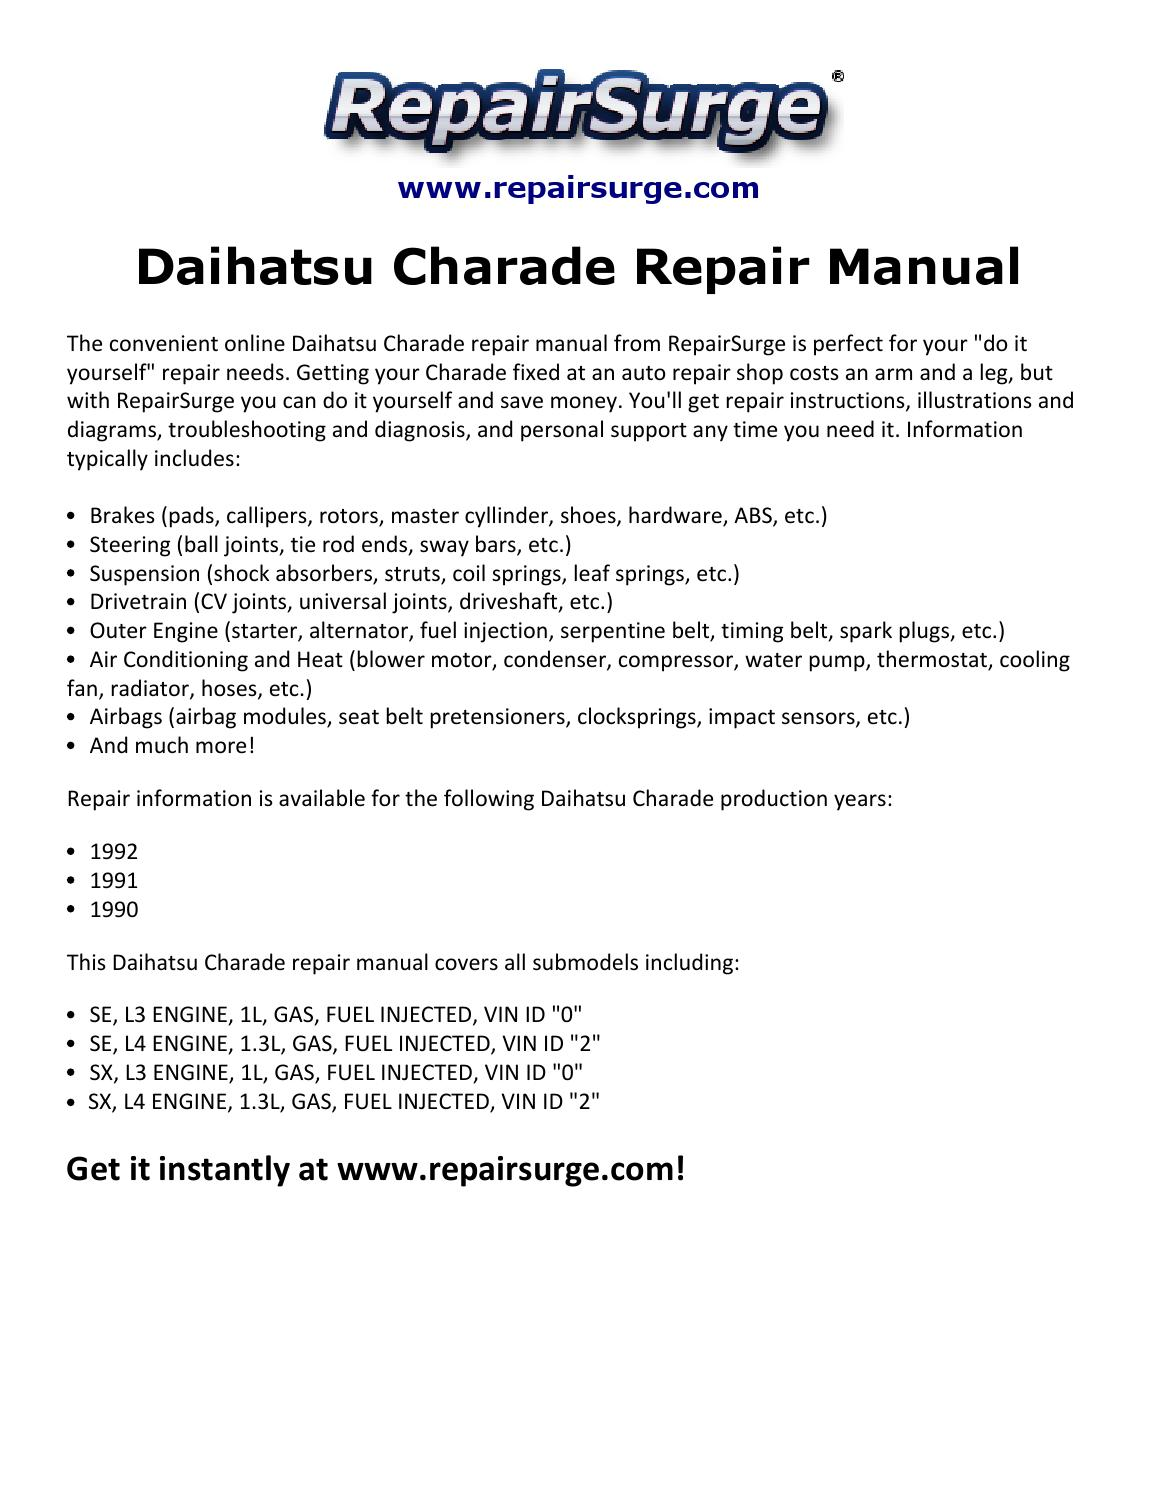 Daihatsu Charade Repair Manual 1990 1992 By Stuart Hemple Issuu Engine Diagrams